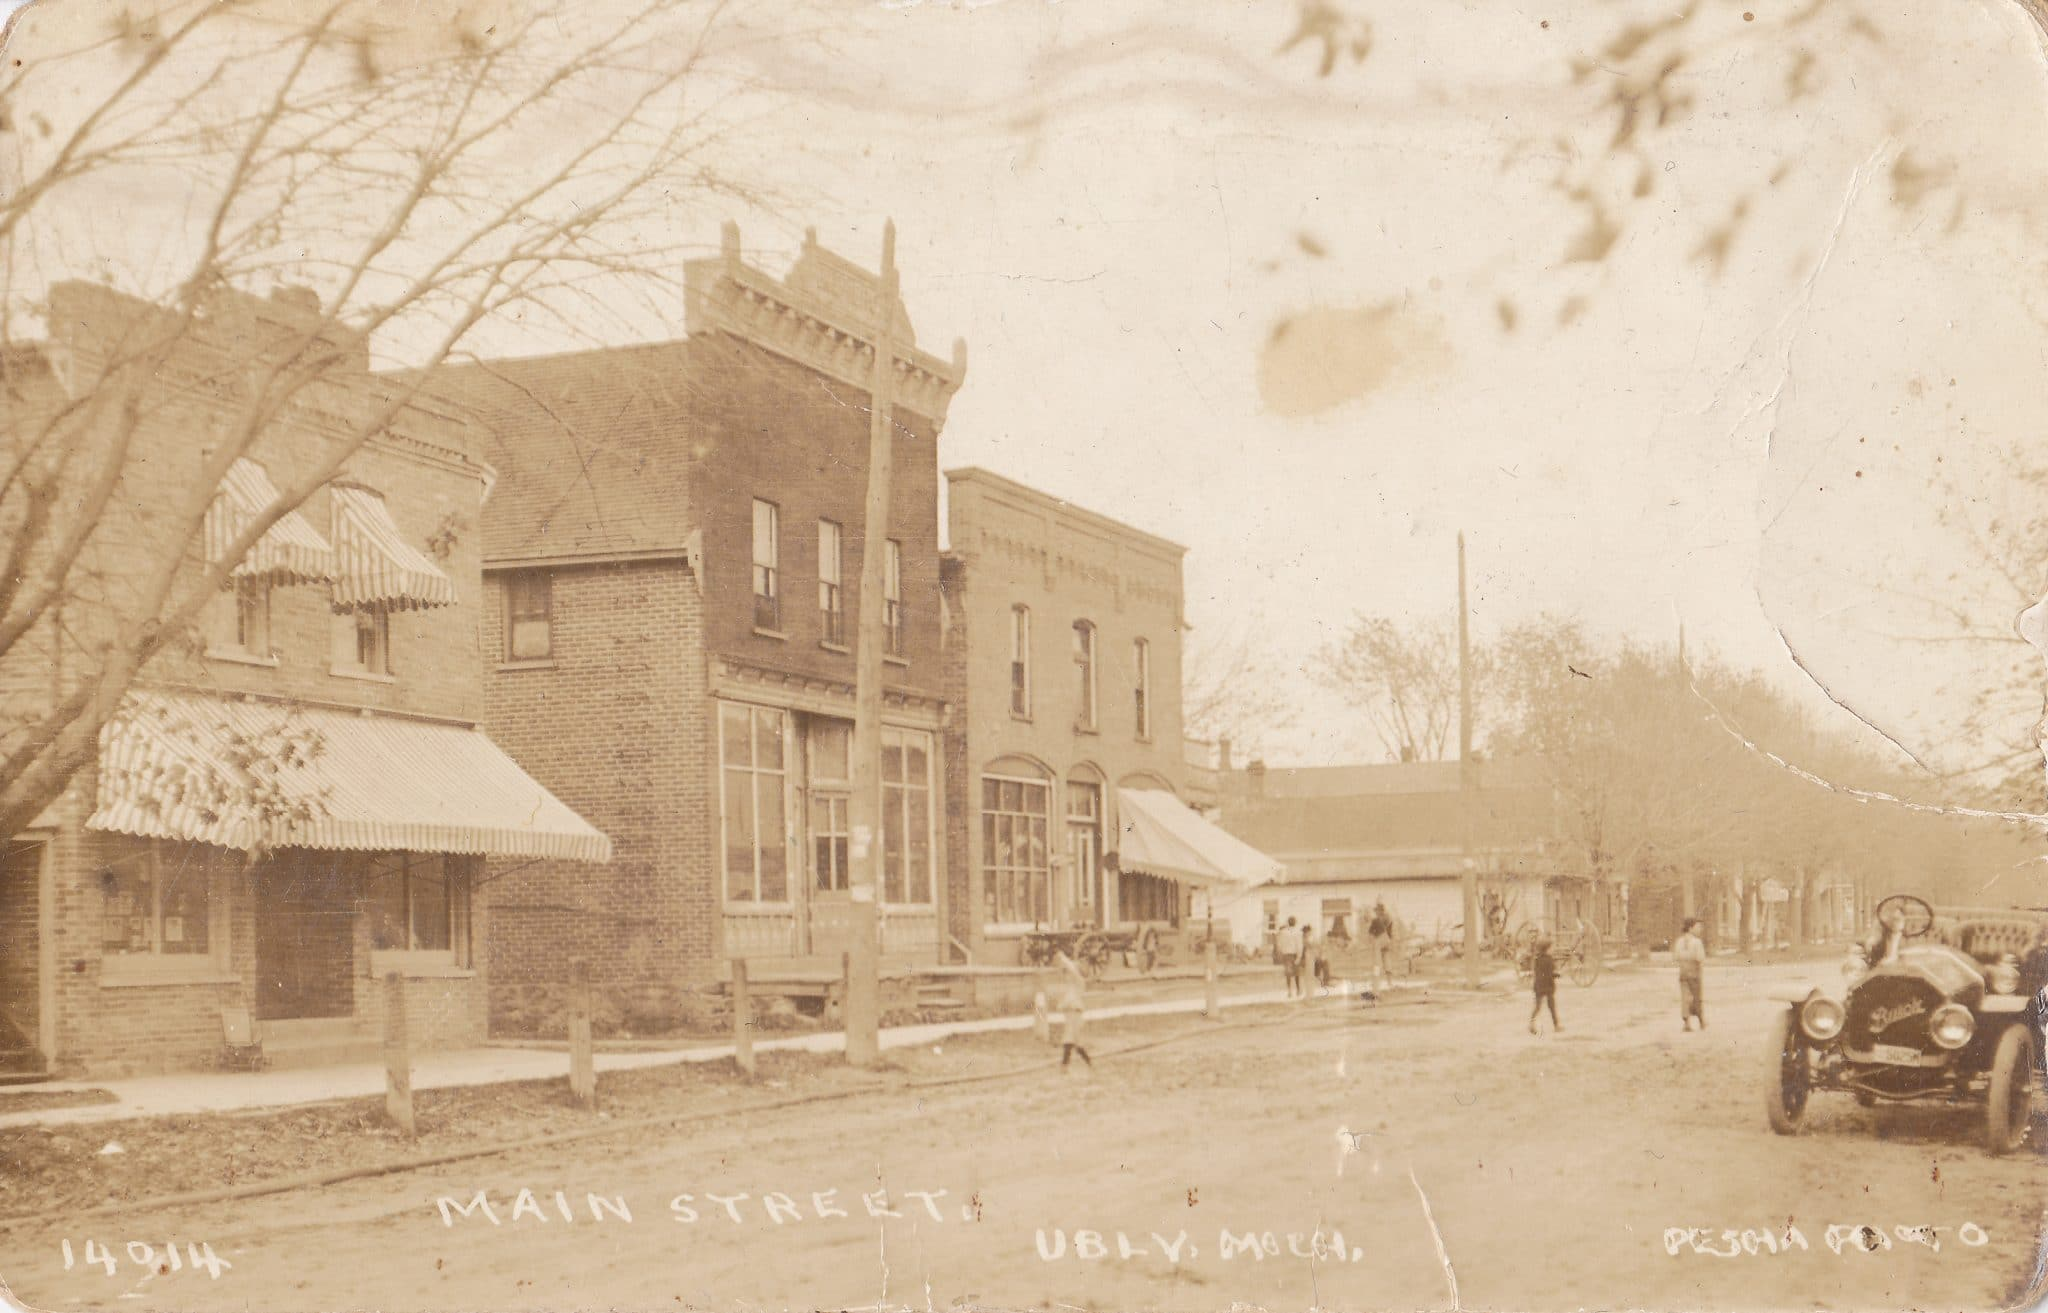 Ubly Main Street circa 1900 - Courtesy Minden City Herald